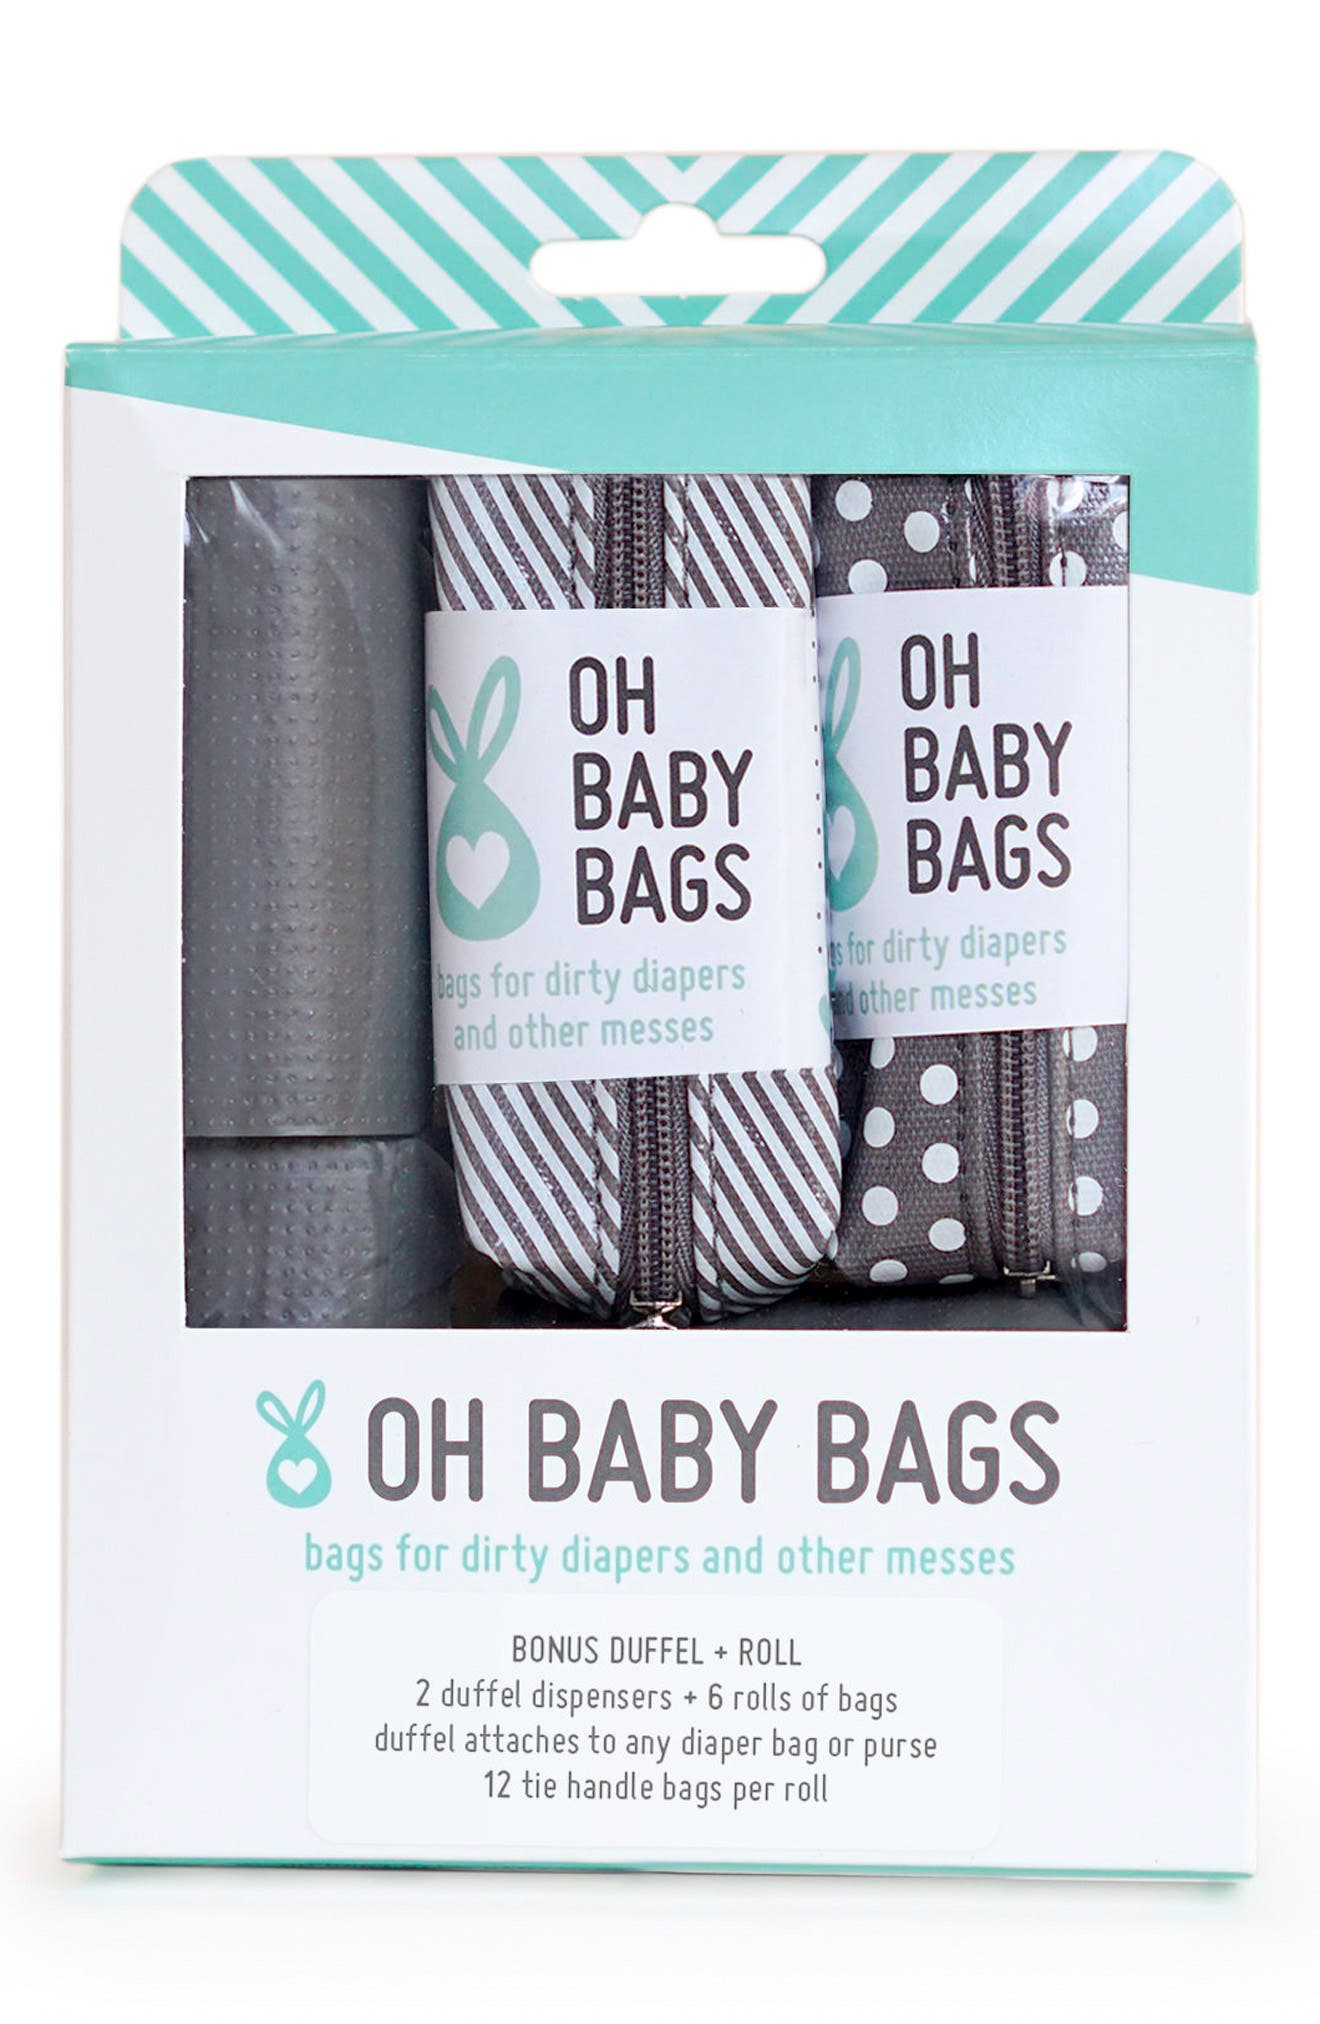 Oh Baby Bags Portable Clip-On Dispenser & Bag Set